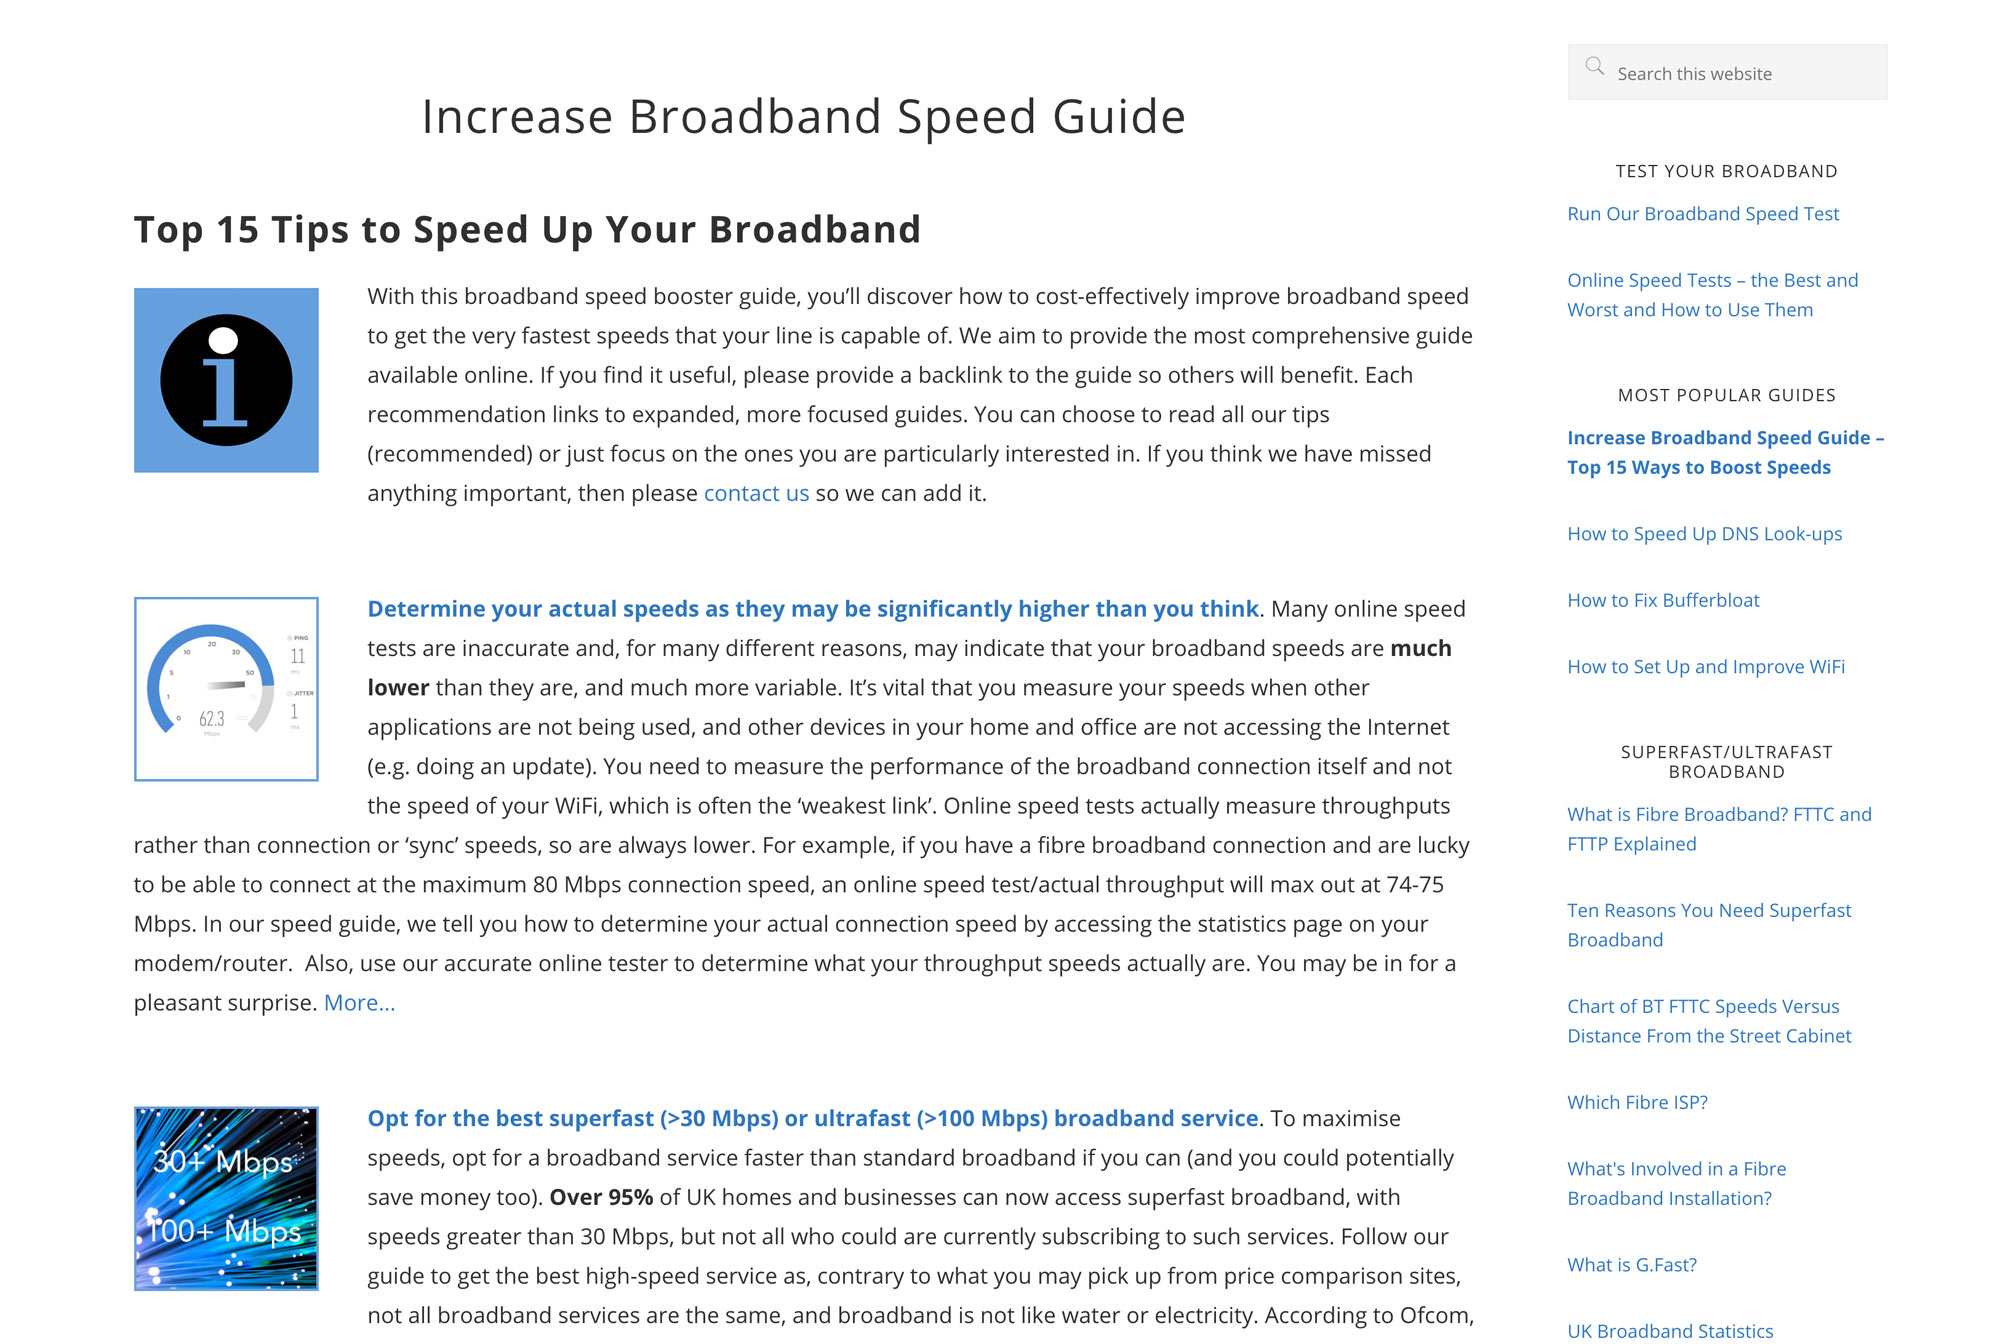 Increase Broadband Speed Guide